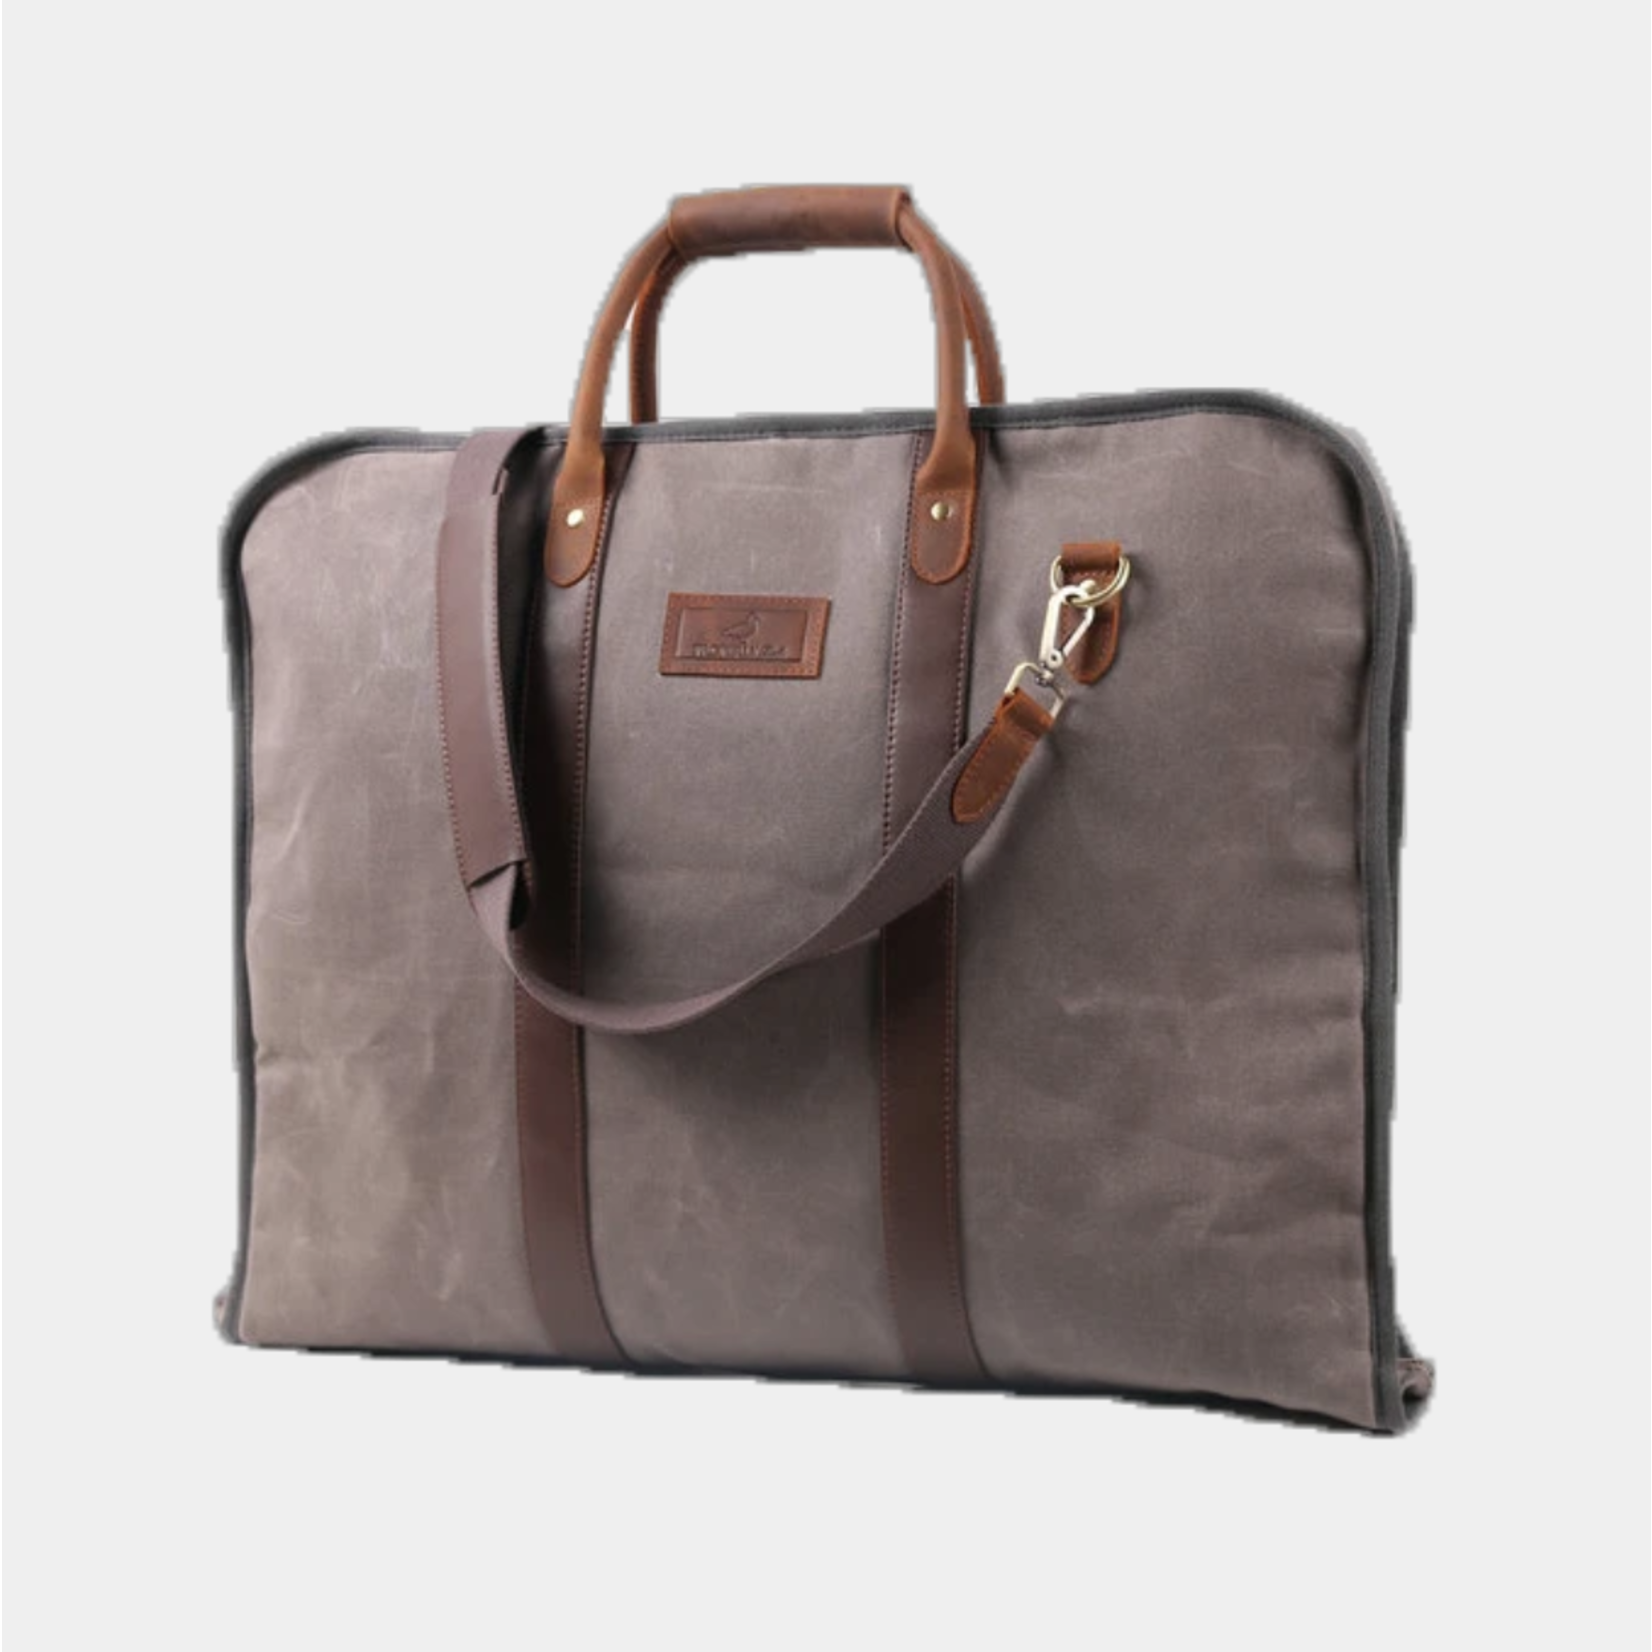 Properly Tied Properly Tied Garment Bag